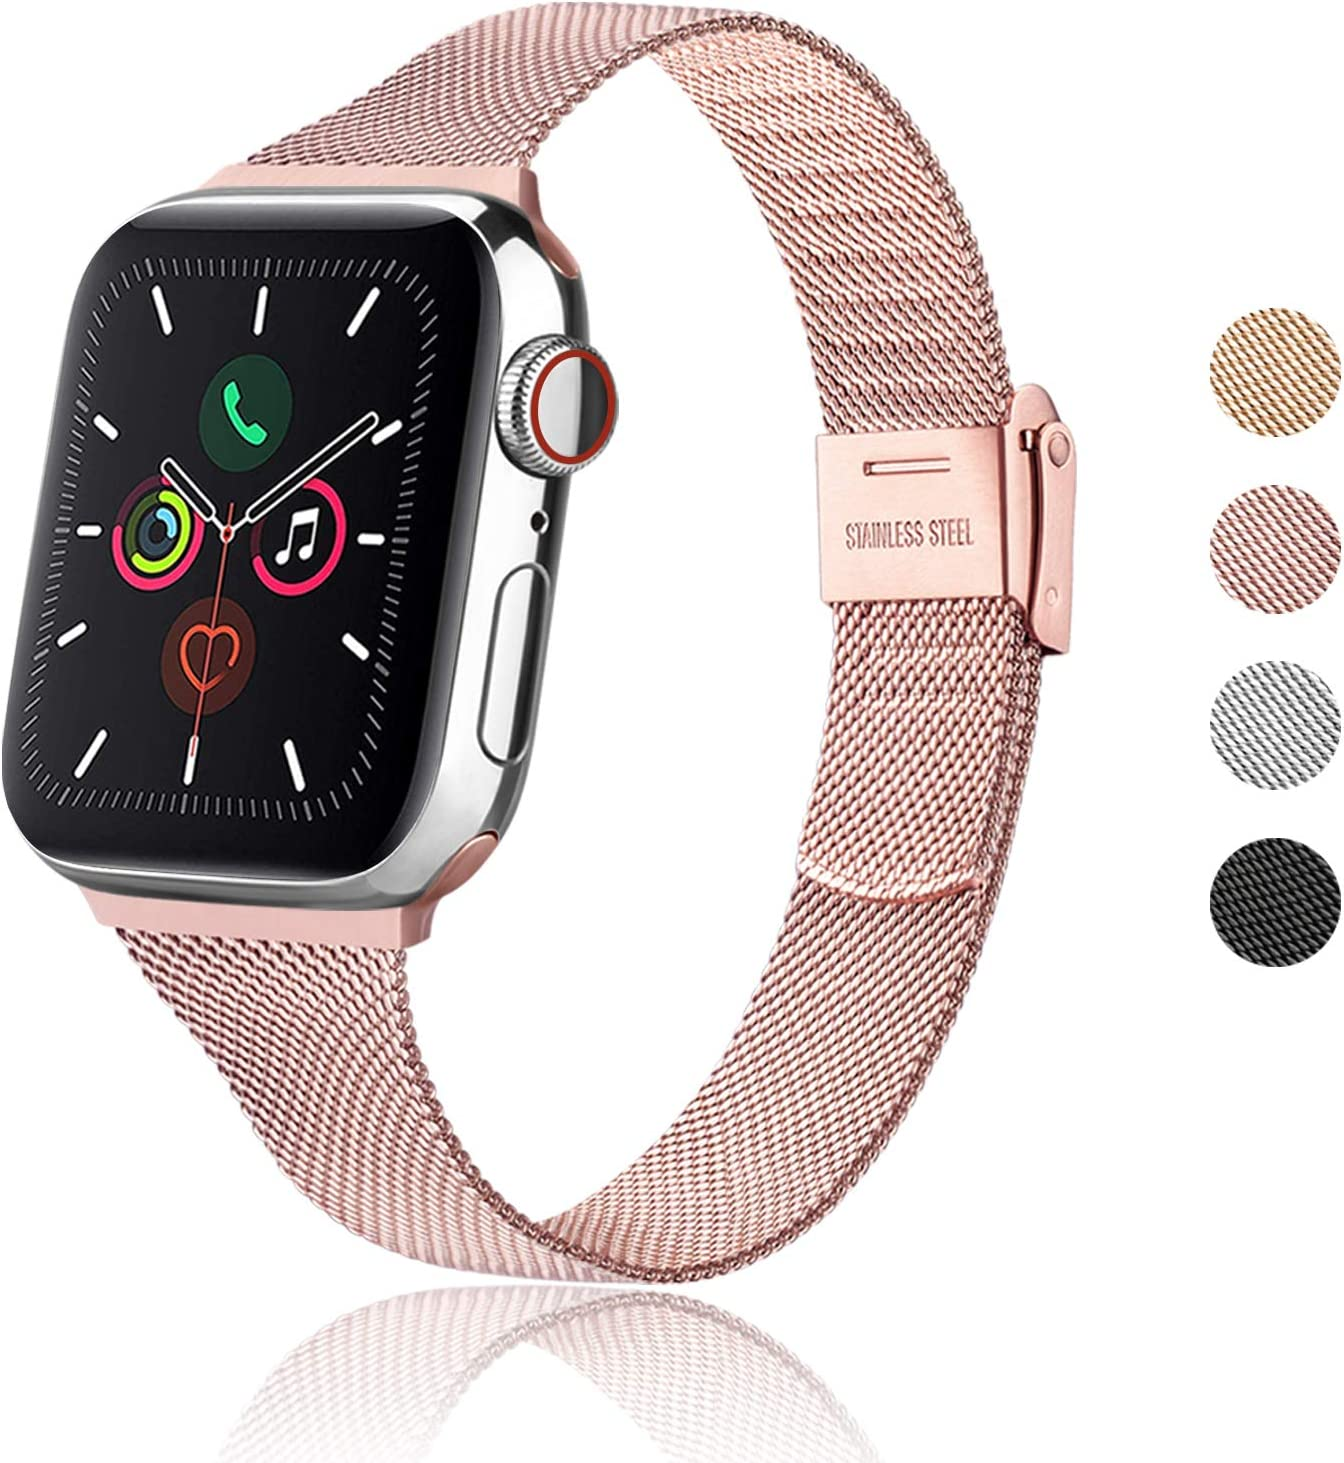 Meliya Metal Slim Bands Compatible with Apple Watch Band 38mm 40mm 42mm 44mm, Stainless Steel Metal Clasp Thin Replacement Band for iWatch Series 5 4 3 2 1 (Rose Pink, 38mm/40mm)